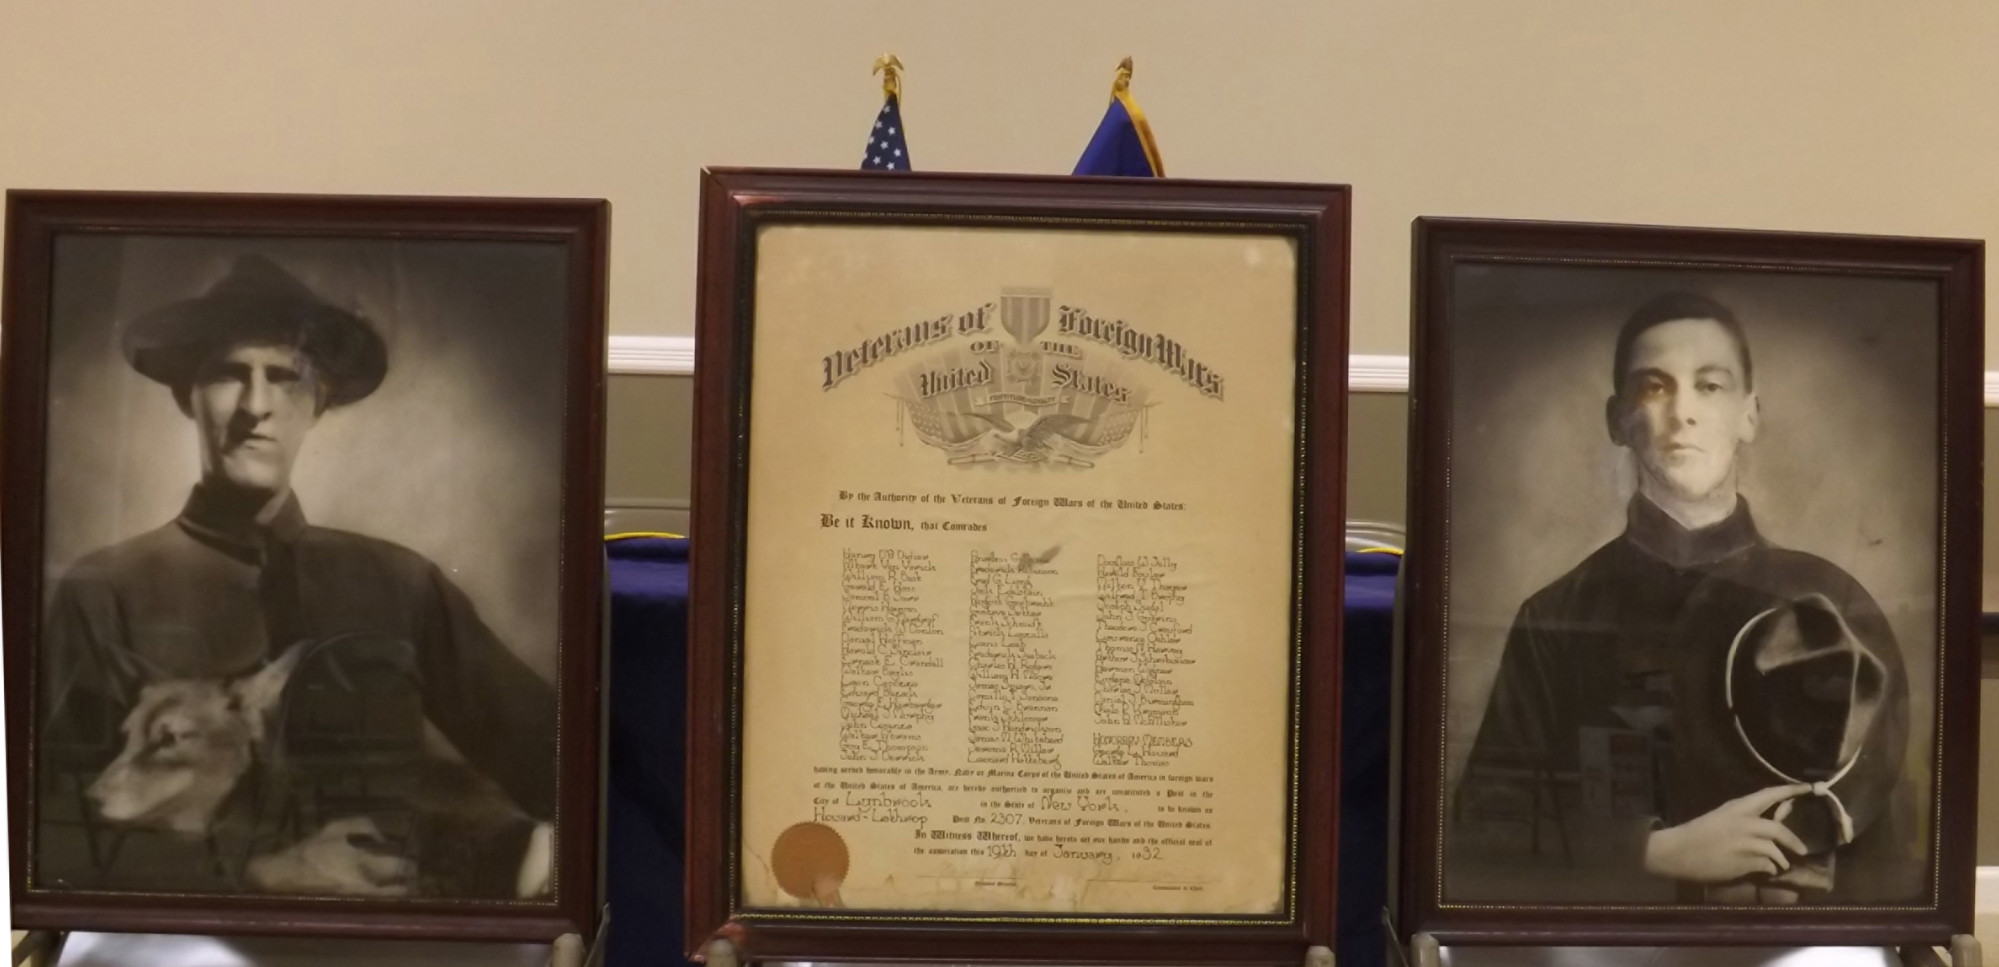 The photos of Frank Howard and Howard Lathrop were saved during a 2011 fire at the Howard-Lathrop Post 2307 VFW in Lynbrook. The post, which was established in 1932, was named in their honor. They were the first two men from Lynbrook to be killed in action during World War I.